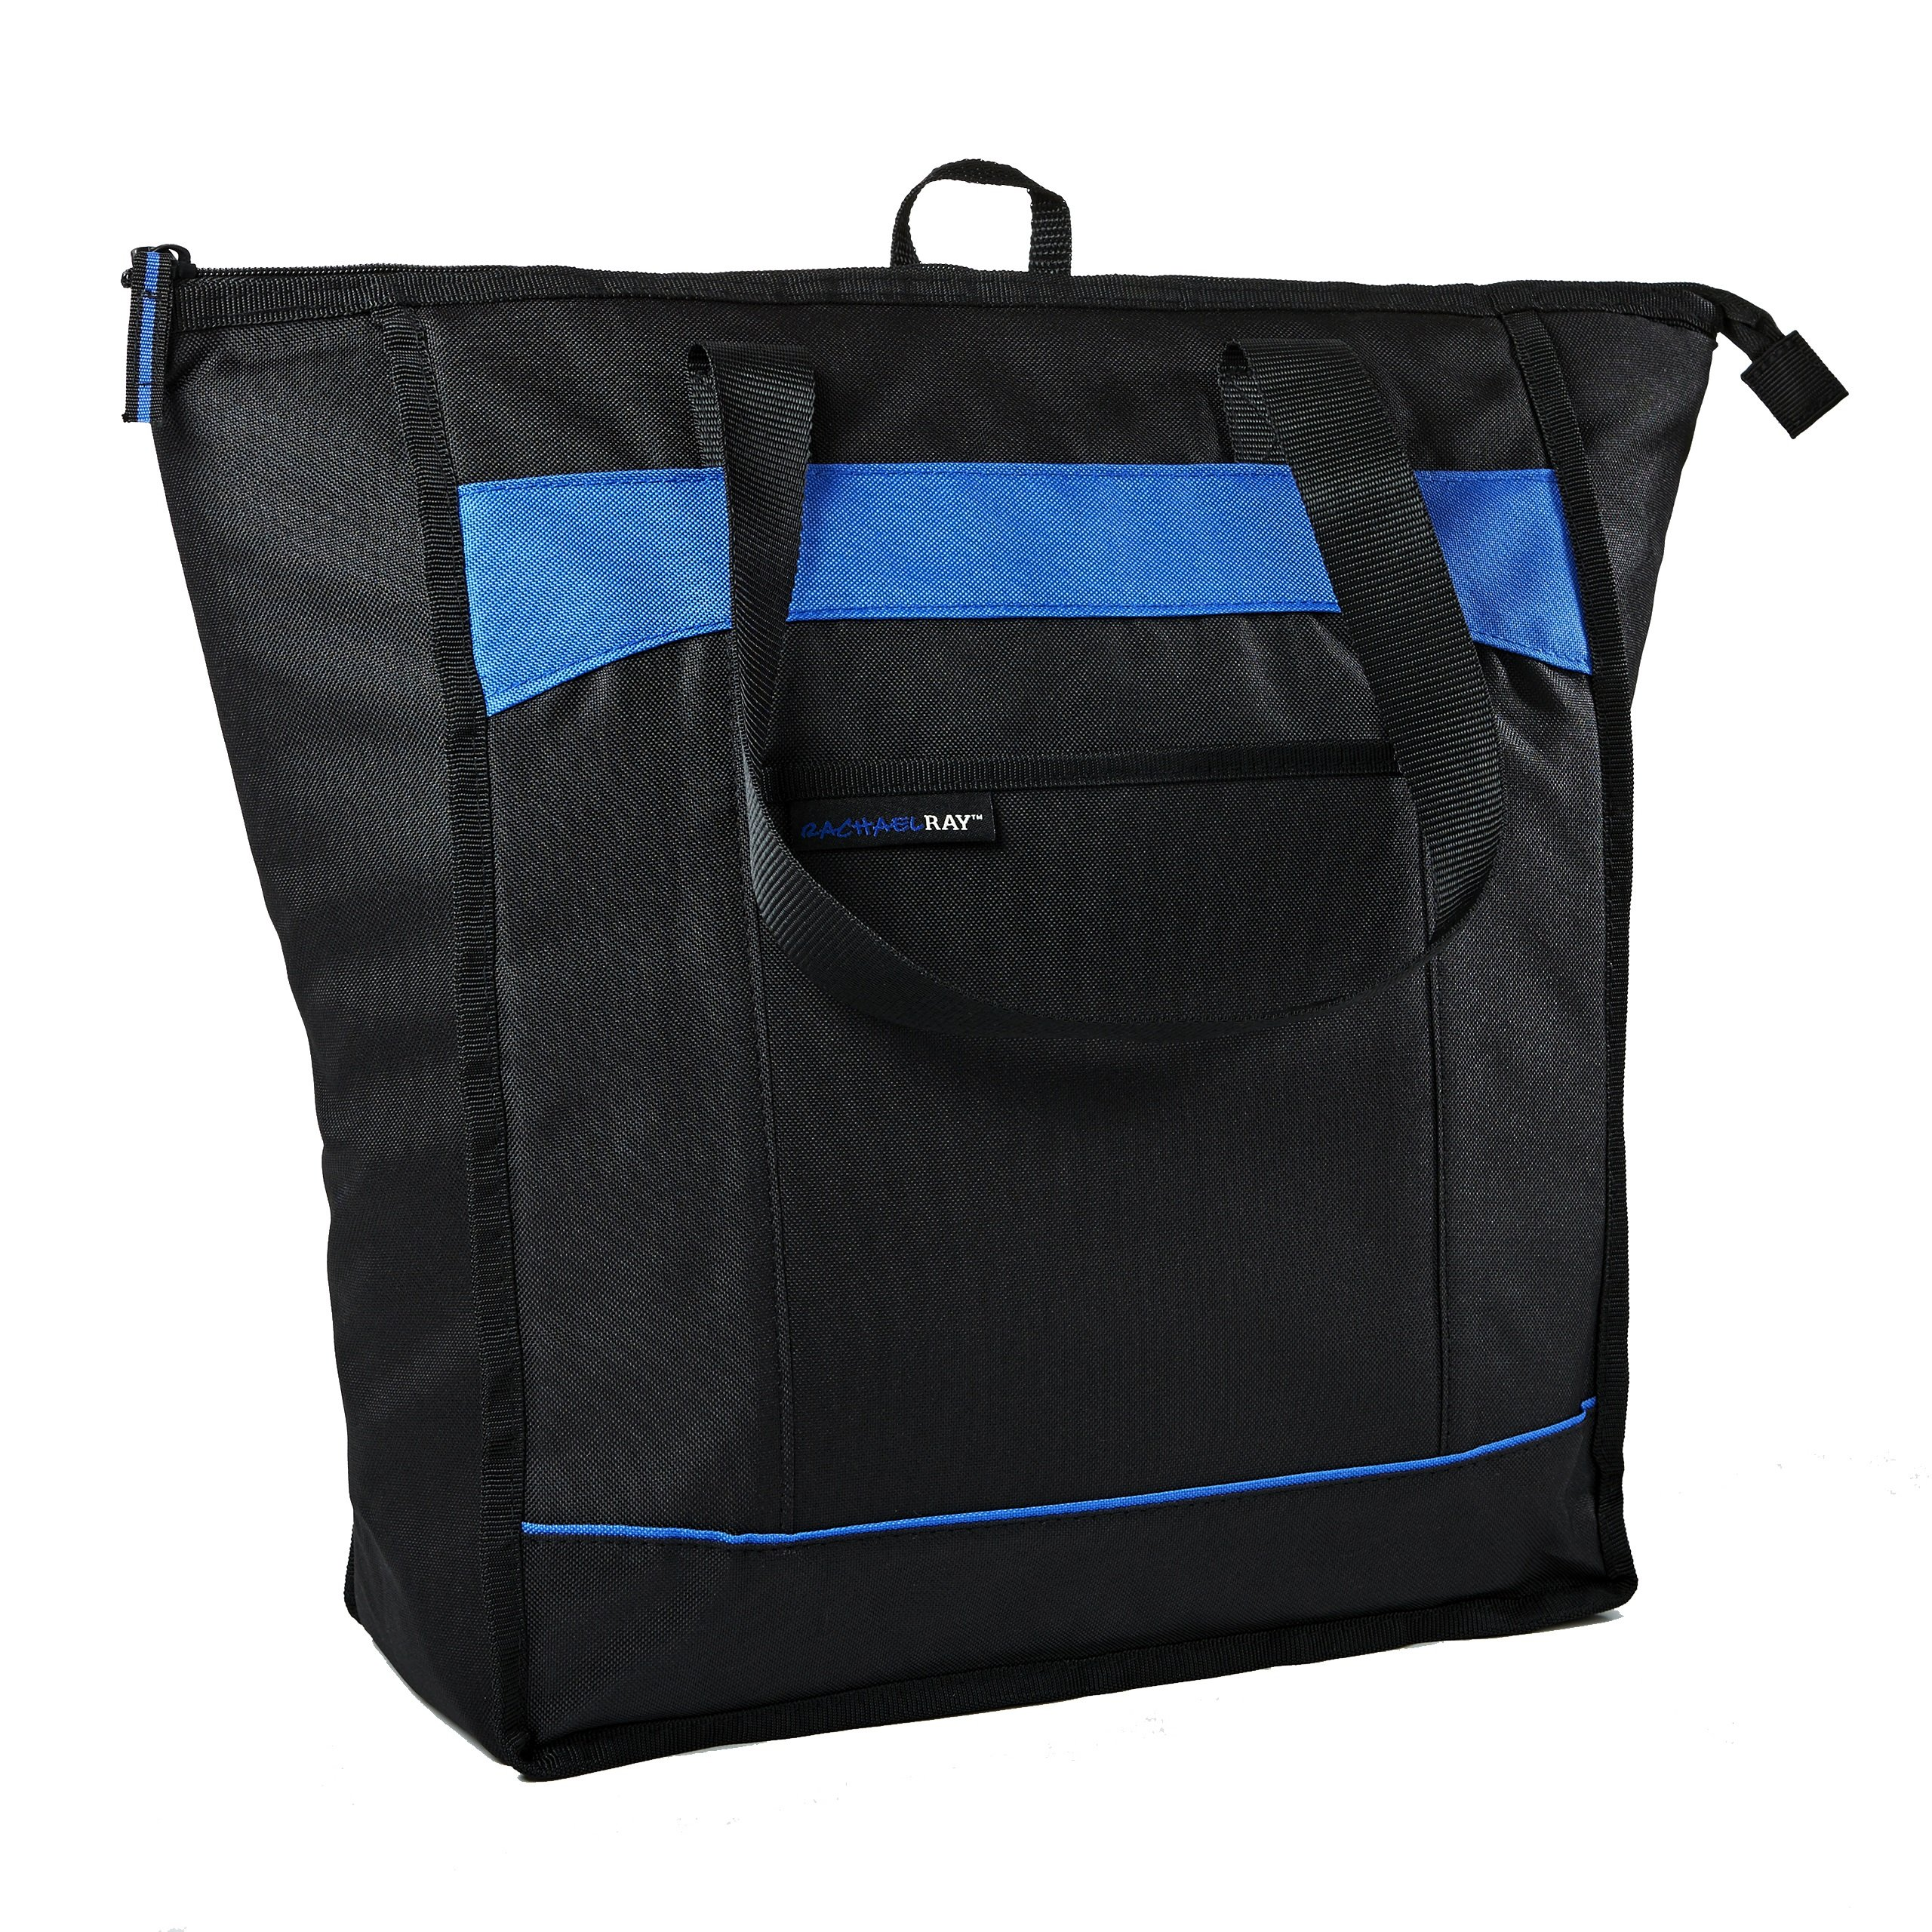 Rachael Ray ChillOut Thermal Tote, Insulated Bag for Grocery Shopping/Entertaining, Transport Hot and Cold Food, Black by Rachael Ray